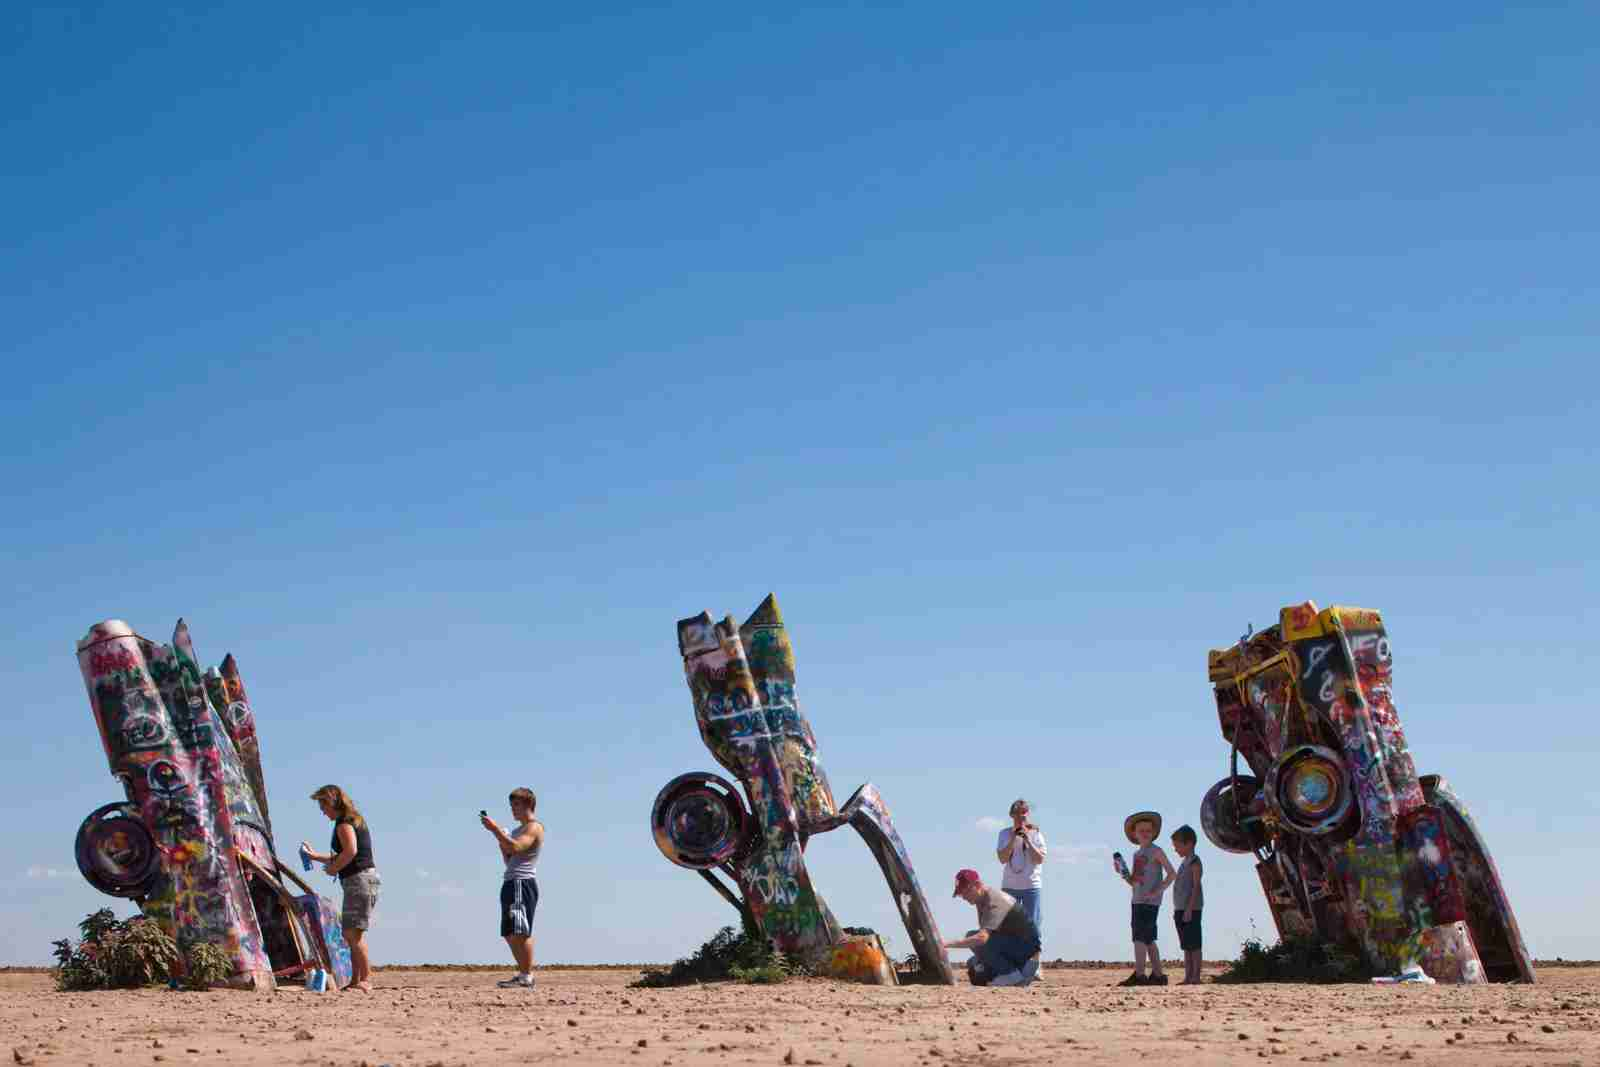 Cadillac Ranch along Interstate 40 in Amarillo. (Photo by Paul Souders/Getty Images)